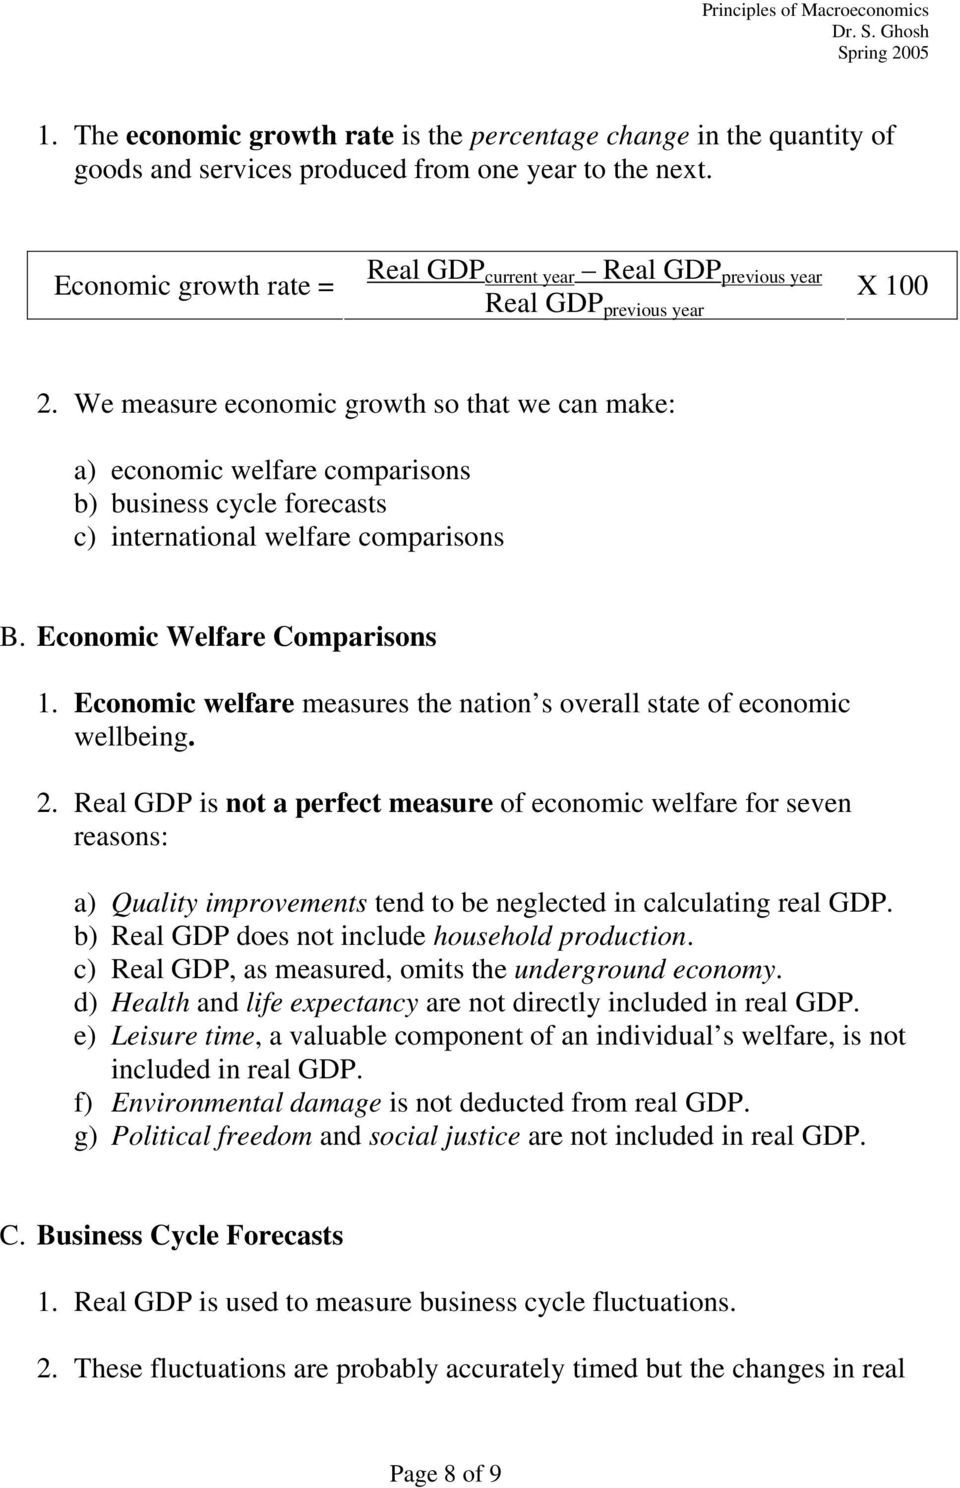 We measure economic growth so that we can make: a) economic welfare comparisons b) business cycle forecasts c) international welfare comparisons B. Economic Welfare Comparisons 1.